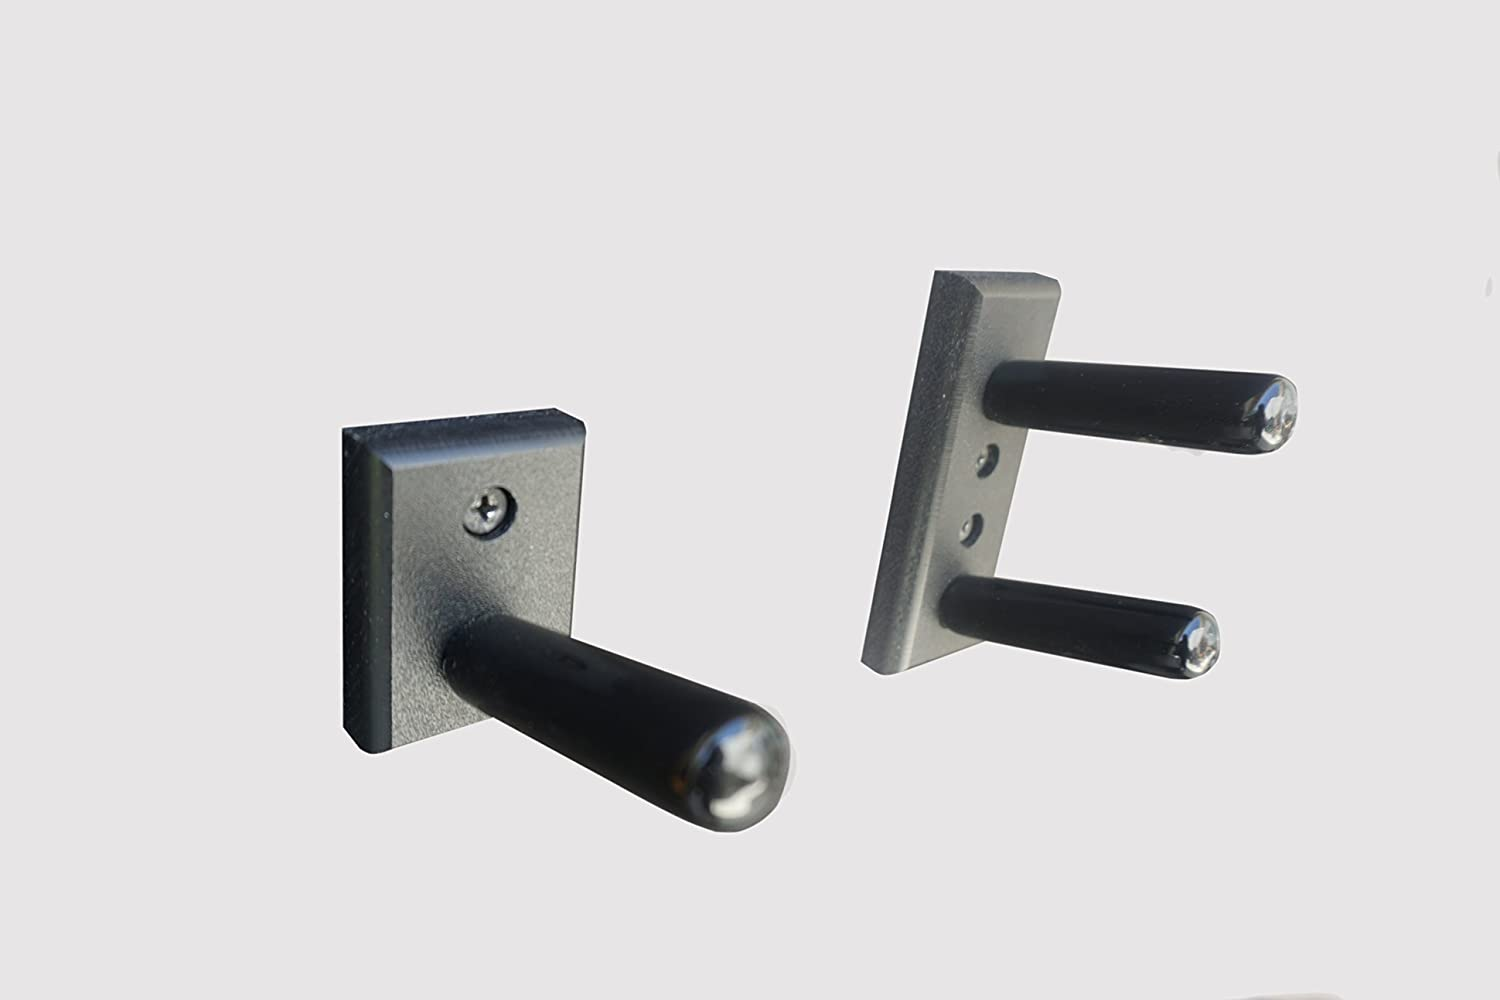 Standard Horizontal Wall Mount for a .22 Cal Rifle with Security Bracket (Made in The USA)